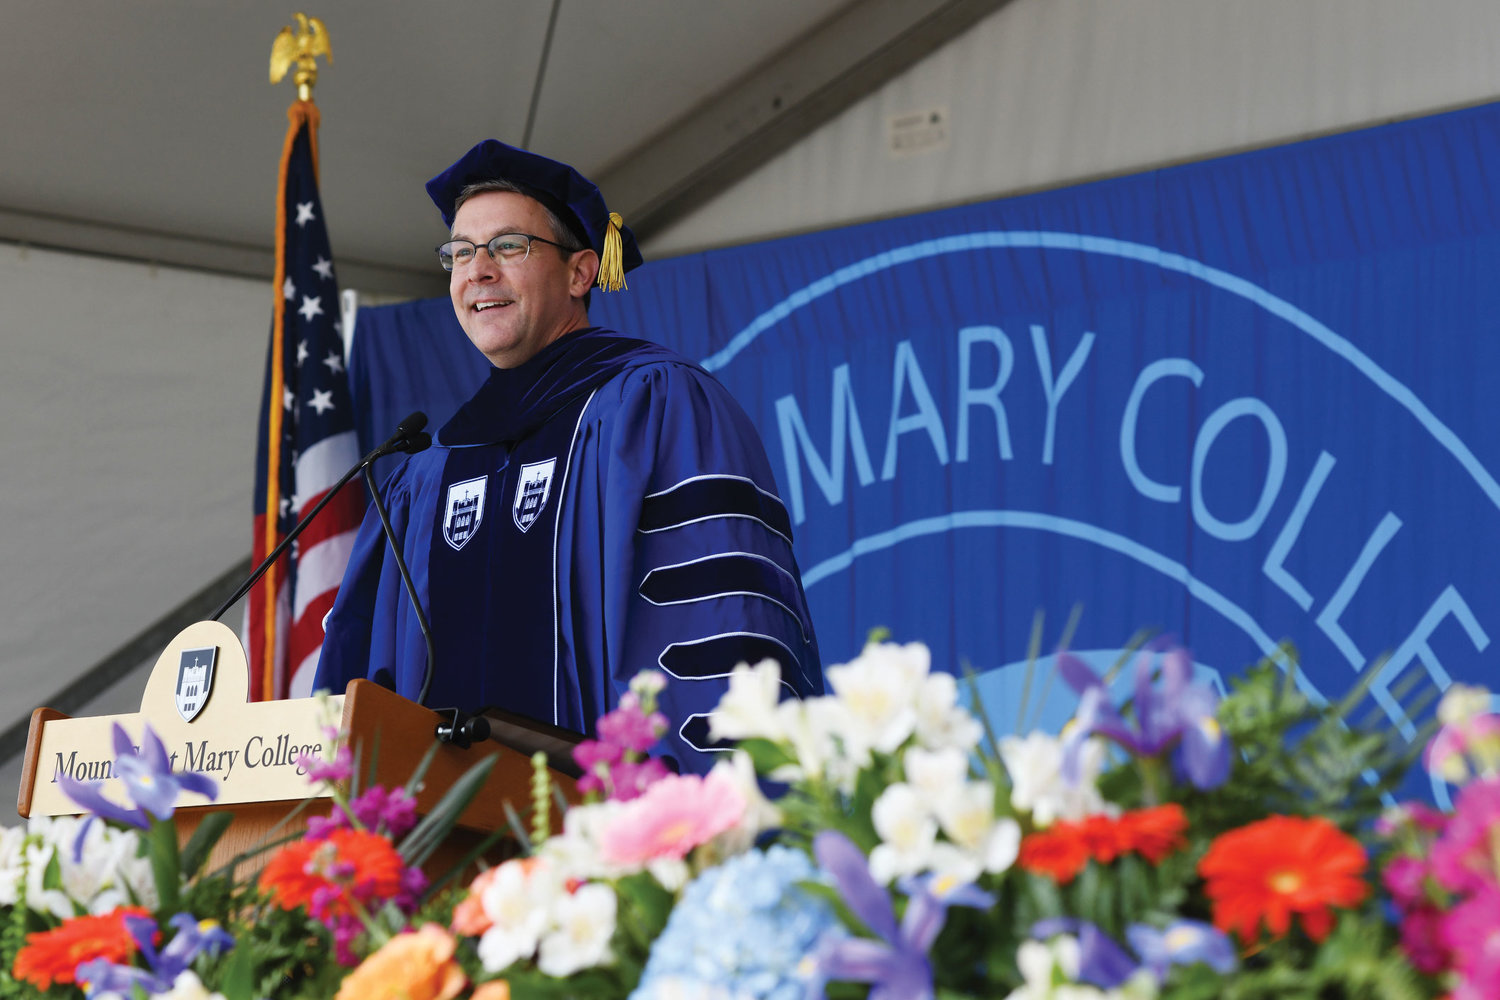 Dr. Jason N. Adsit, president of Mount St. Mary College, welcomes the graduates.